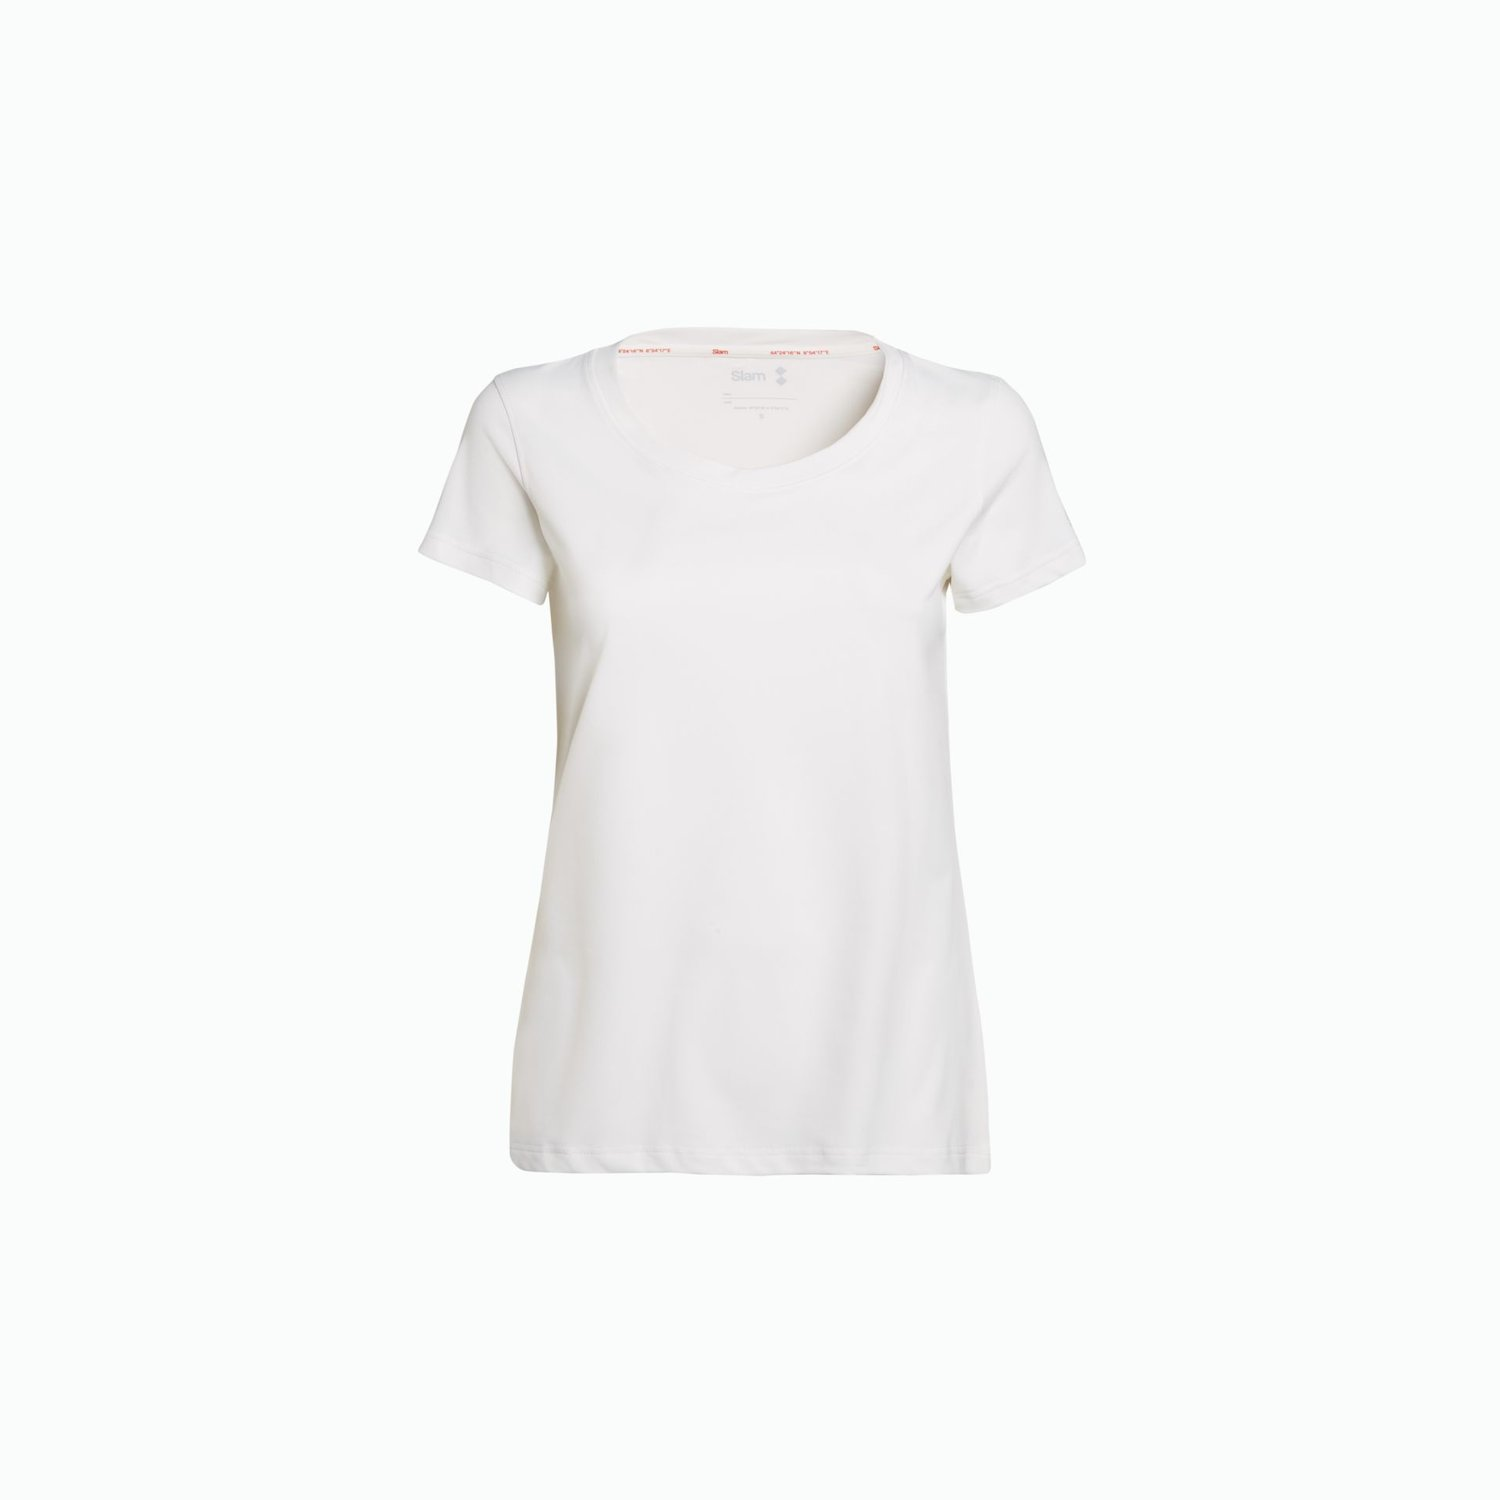 T-shirt tech alliot - White